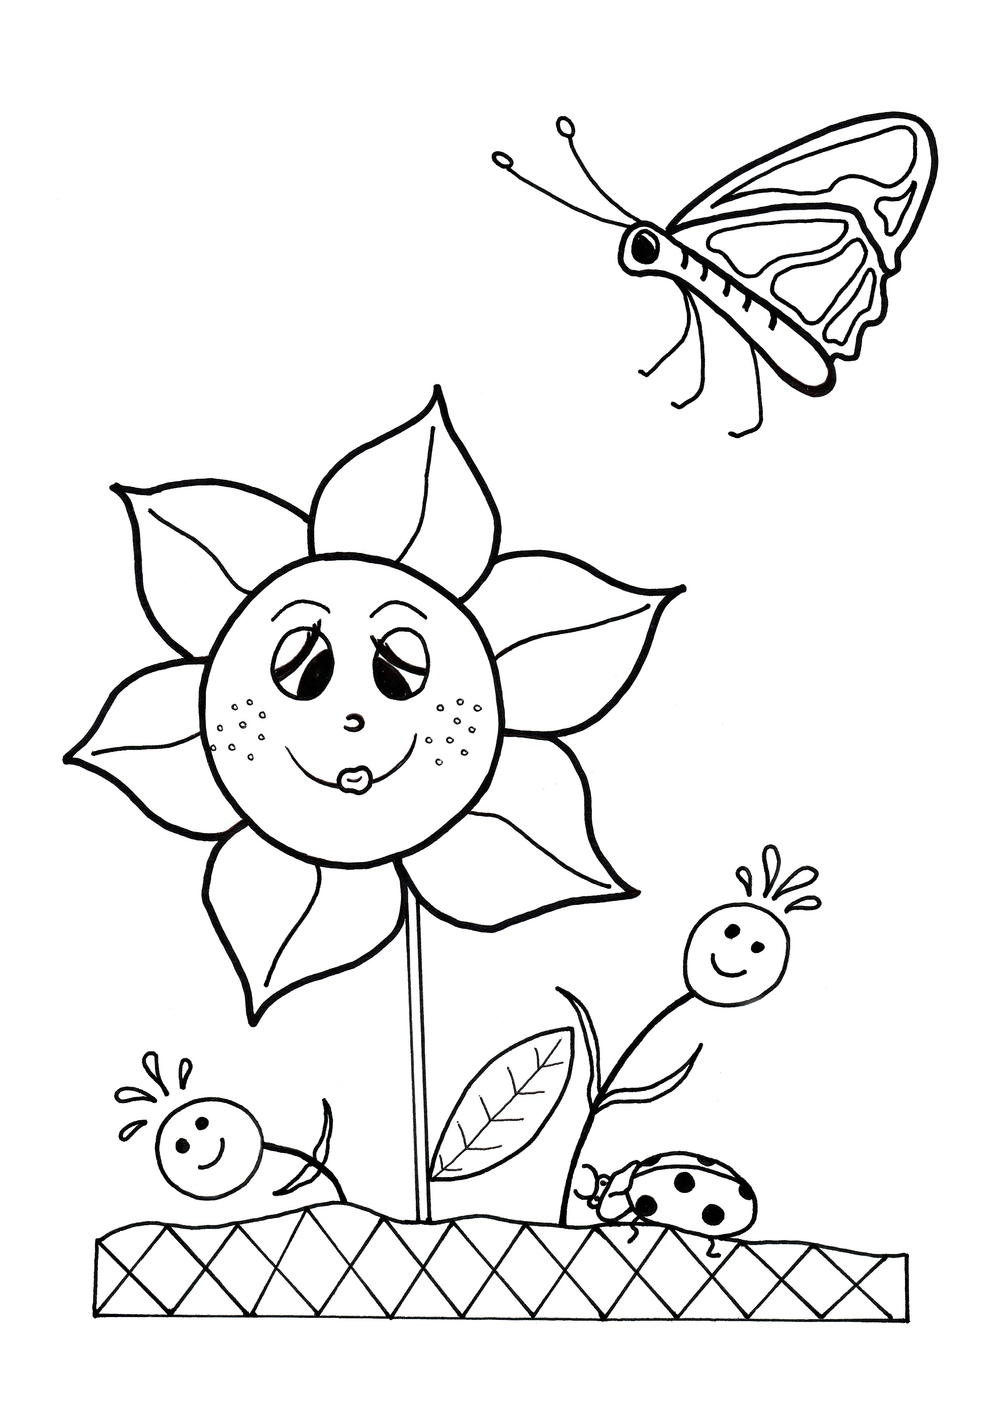 Sprint coloring pages ~ Dancing Flowers Spring Coloring Sheet | AllFreeKidsCrafts.com